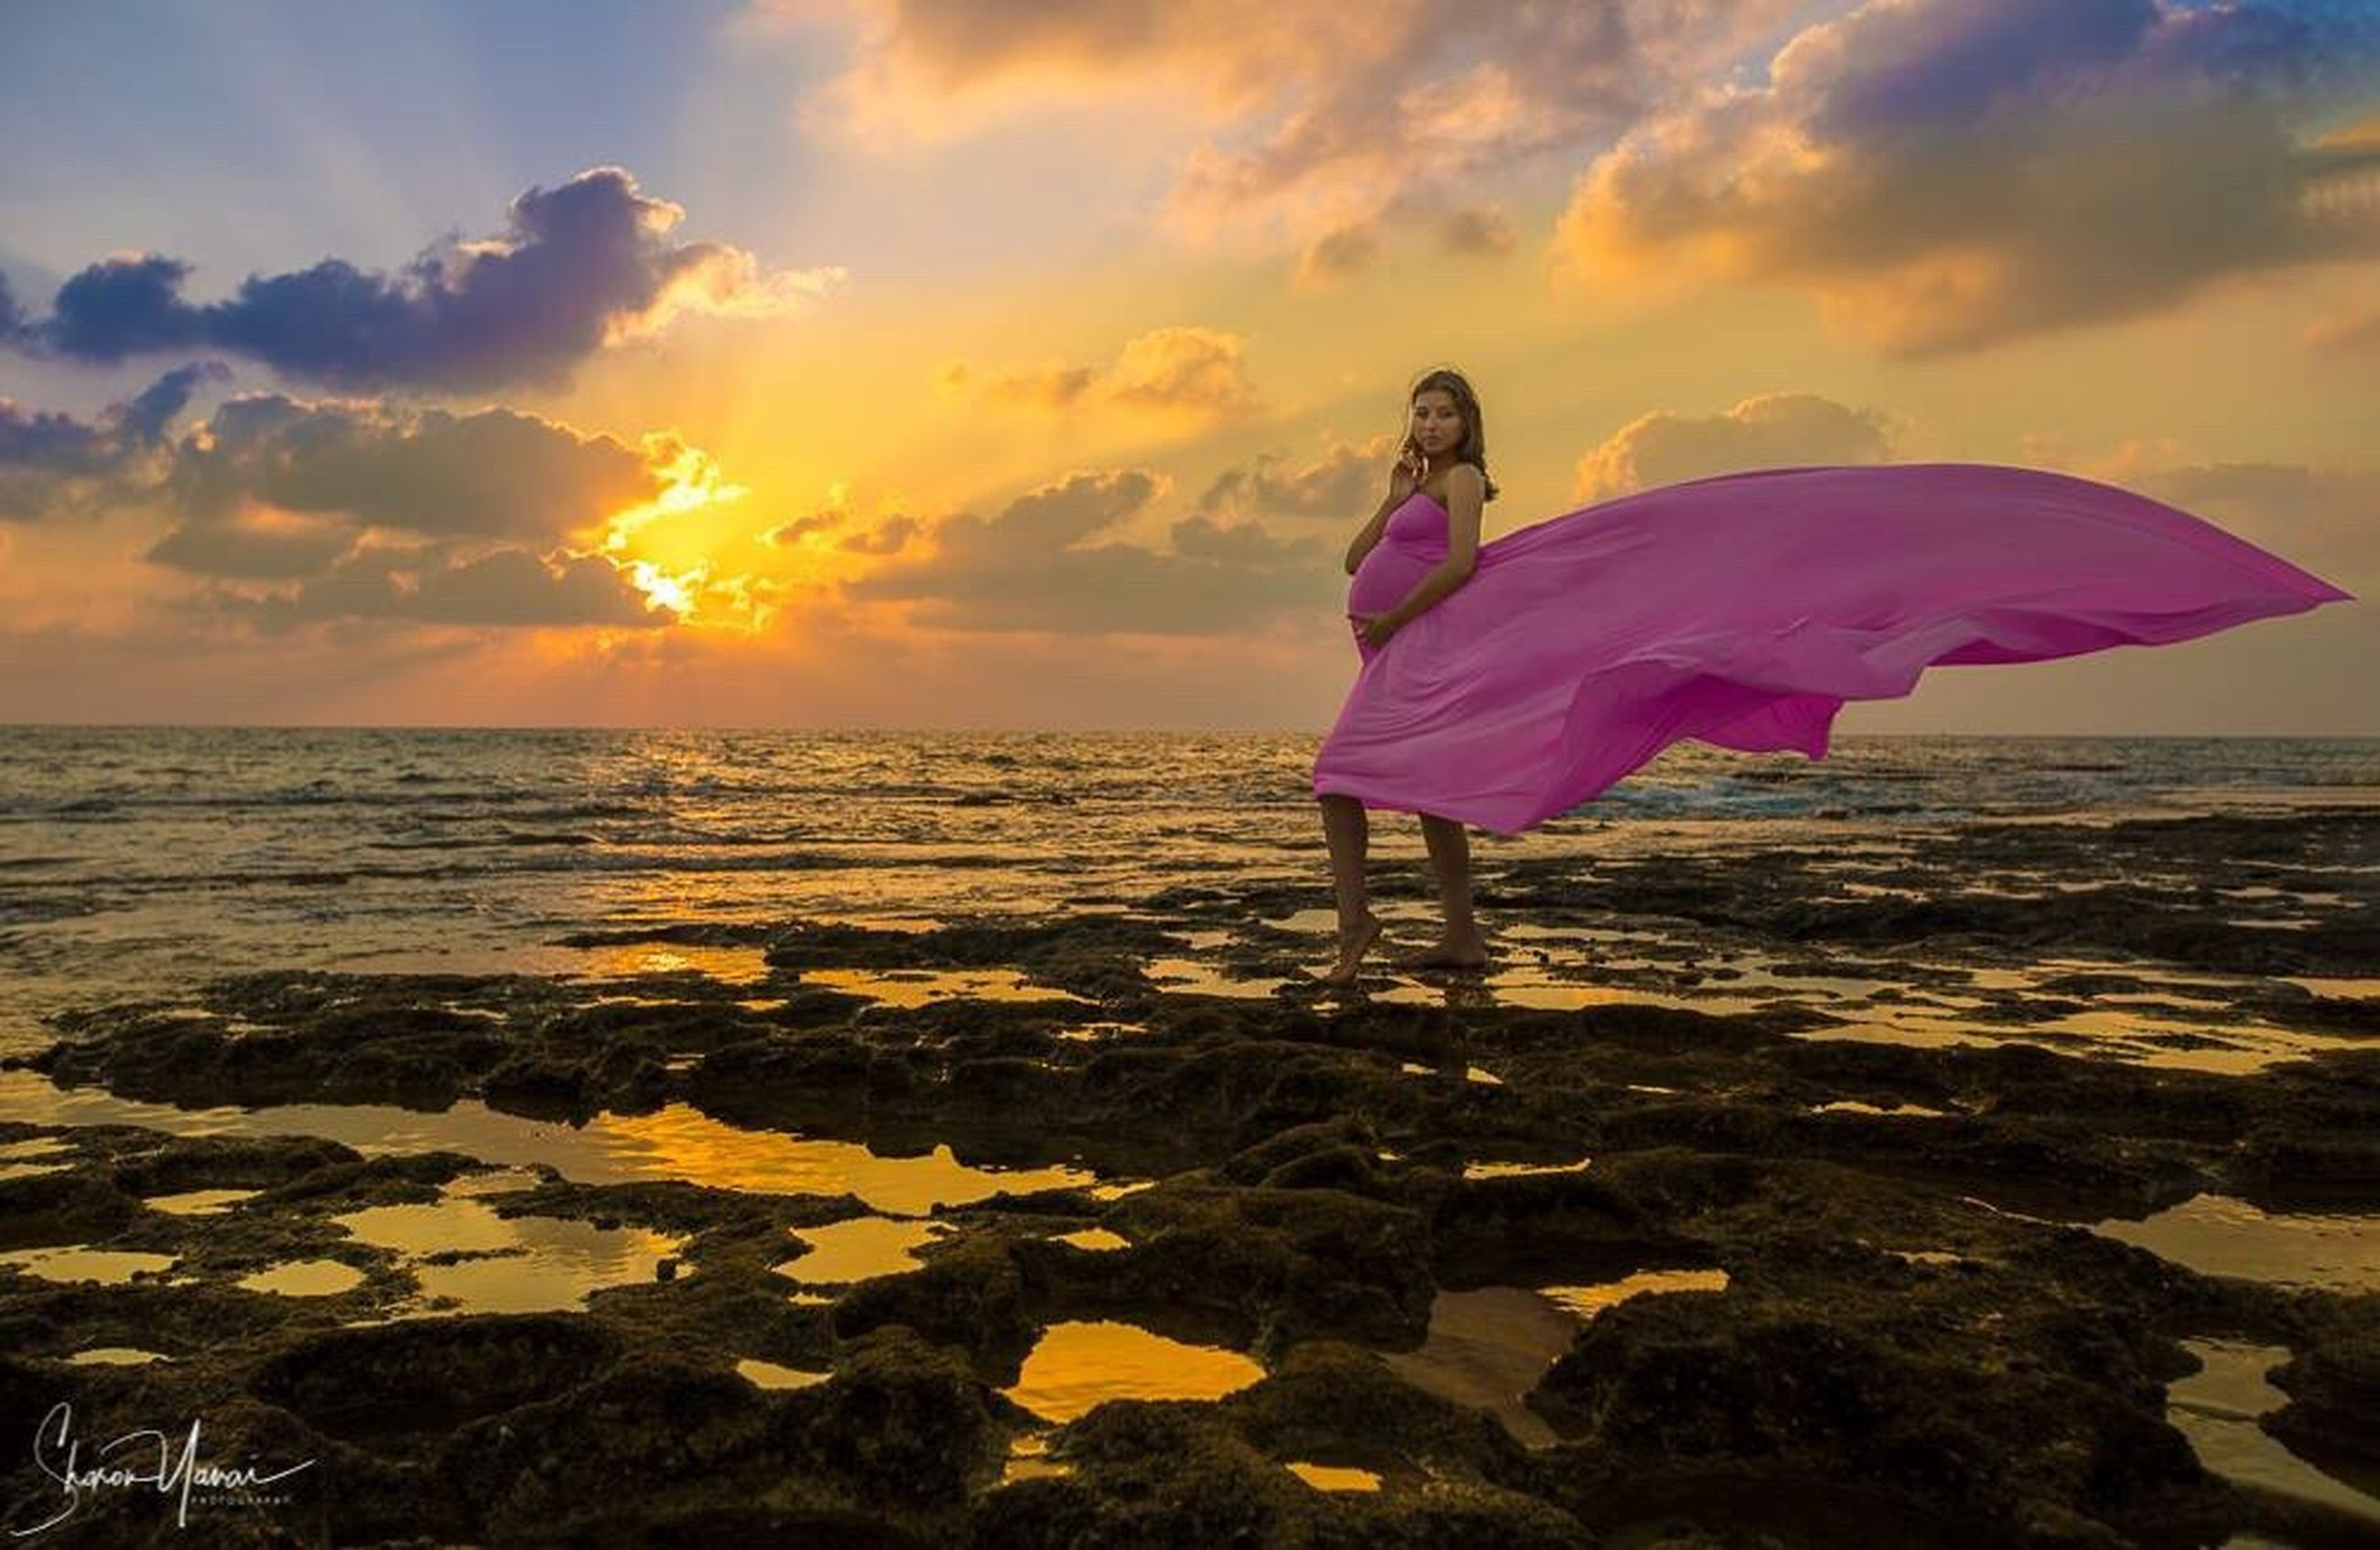 sunset, sea, one person, beach, nature, beauty in nature, cloud - sky, sky, tranquility, full length, scenics, women, tranquil scene, water, sun, horizon over water, outdoors, young adult, beautiful woman, real people, standing, adult, young women, portrait, glamour, only women, one woman only, one young woman only, people, adults only, day